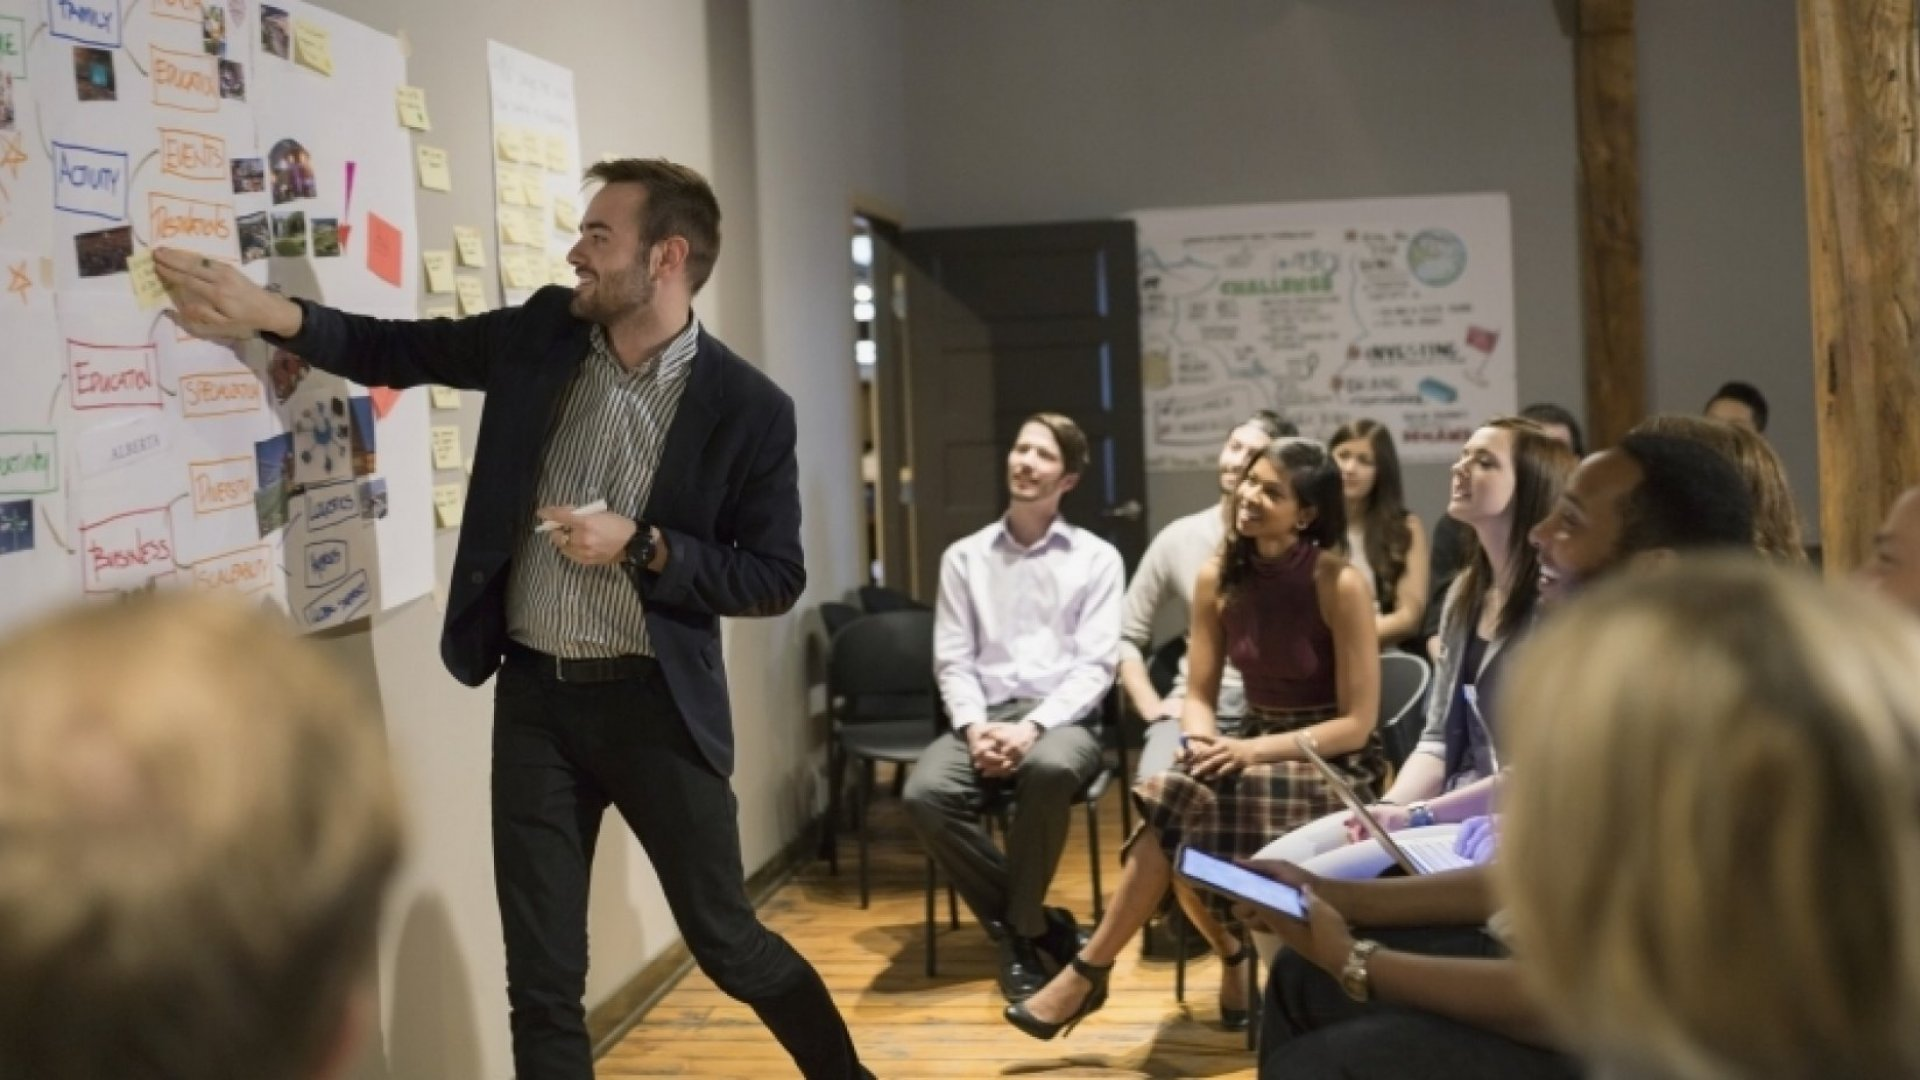 Practice the 3 C's to Be a Better Leader